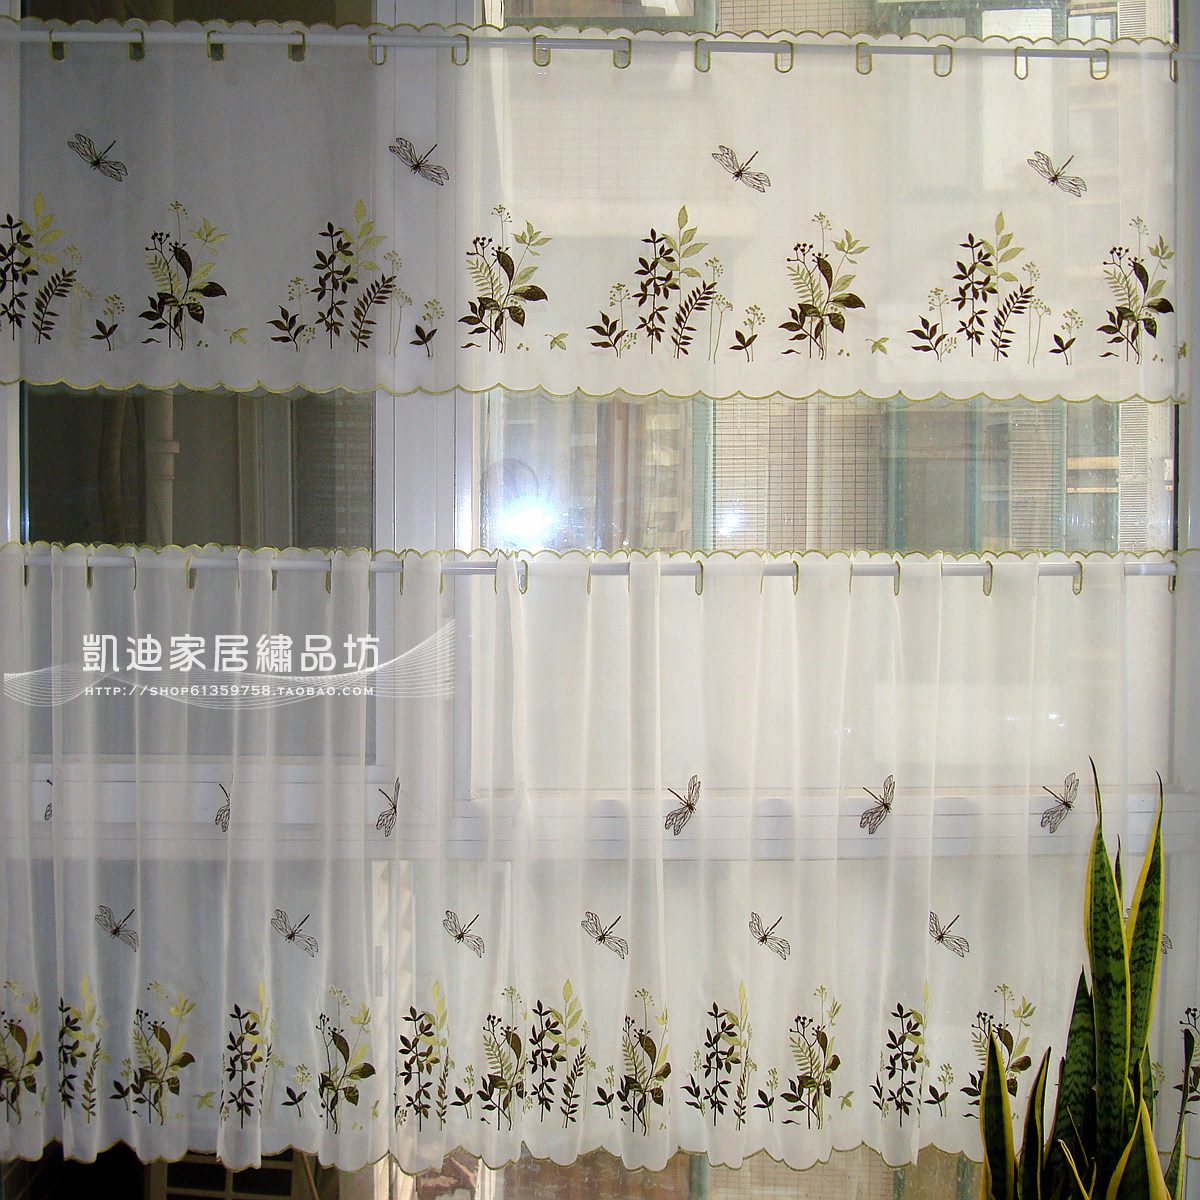 Kitchen Curtains Fabric Curtains Fabric Stripe Drapes: Kitchen Curtain Embroidery Fabric Coffee Curtain Tulle